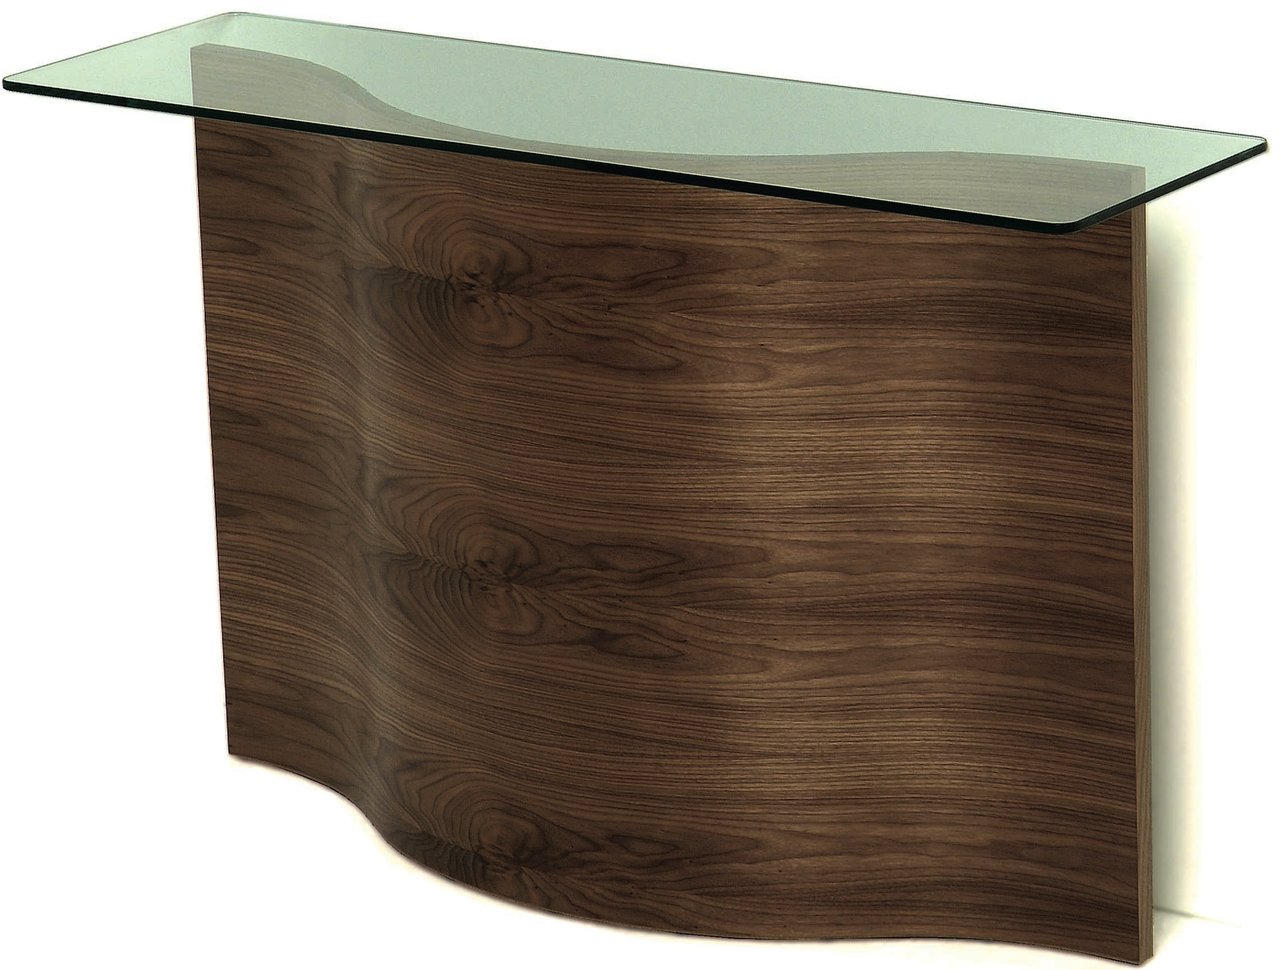 Tom Schneider Wave Console table Console tables : console tables 73247 from furnish.co.uk size 1280 x 970 png 1812kB